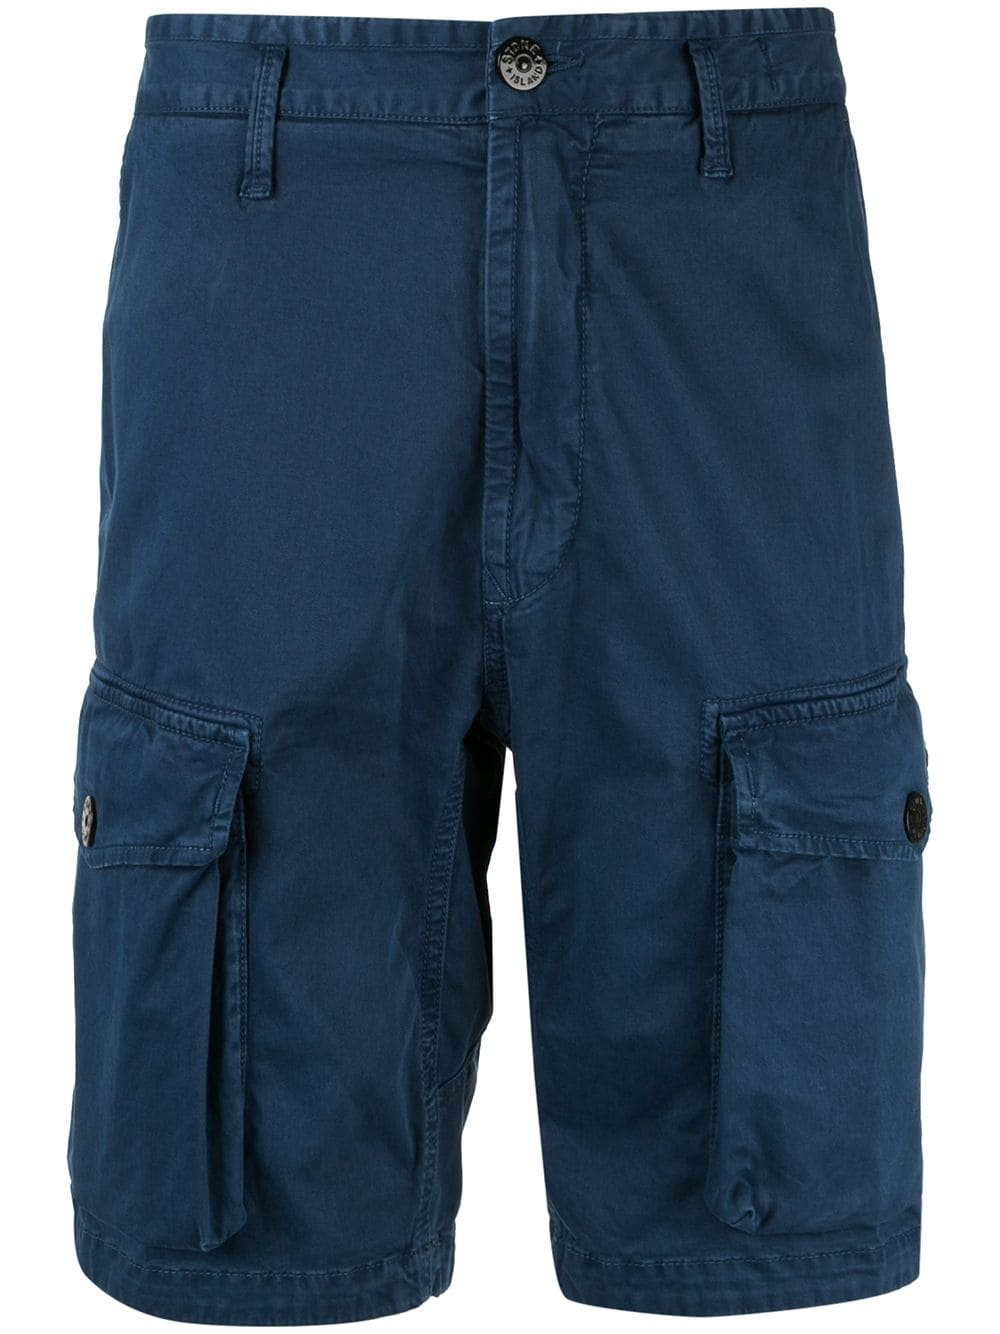 8c3d95a78a Stone Island cargo shorts - Blue in 2019 | Products | Stone island ...